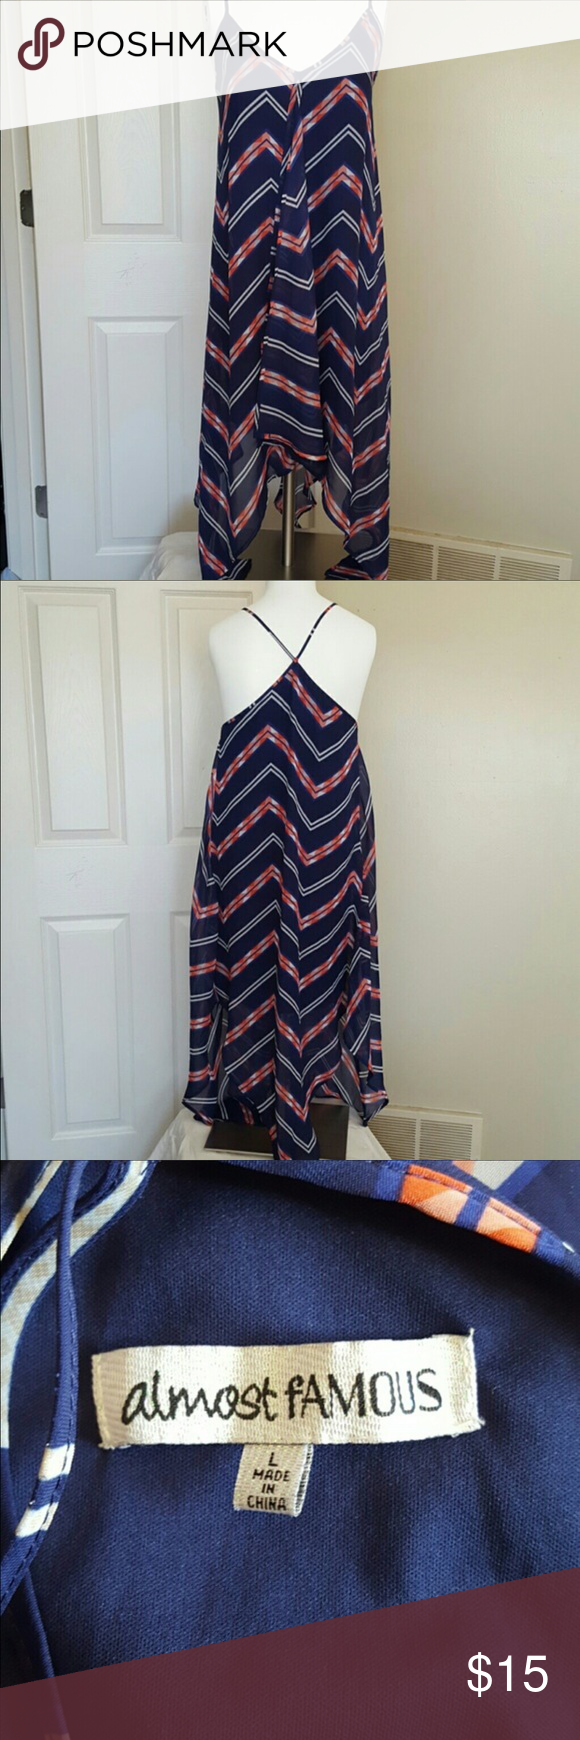 """Super cute summer dress! Size L Handkerchief dress; so cute! Flattering front hides """"problem"""" areas, and colors are beautiful. High-low bottom. Great condition. No stains/tears. Pet/smoke free home. Almost Famous Dresses"""